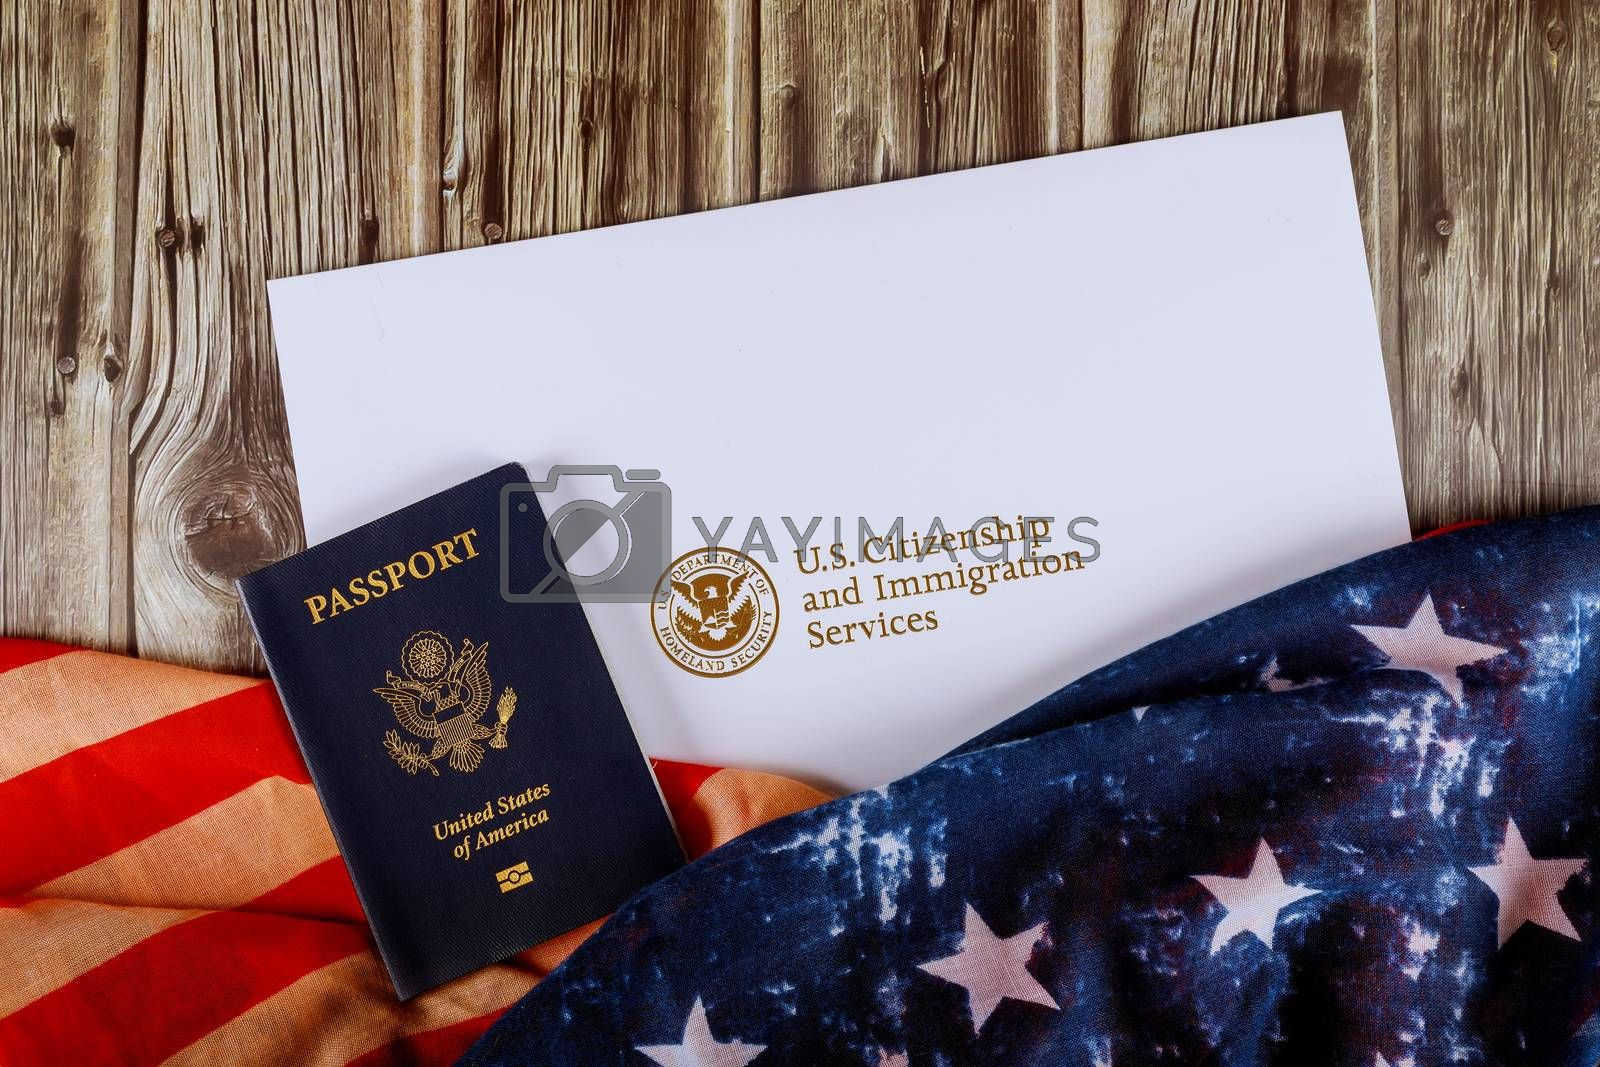 USA passport and citizenship naturalization certificate of US flag over wooden background